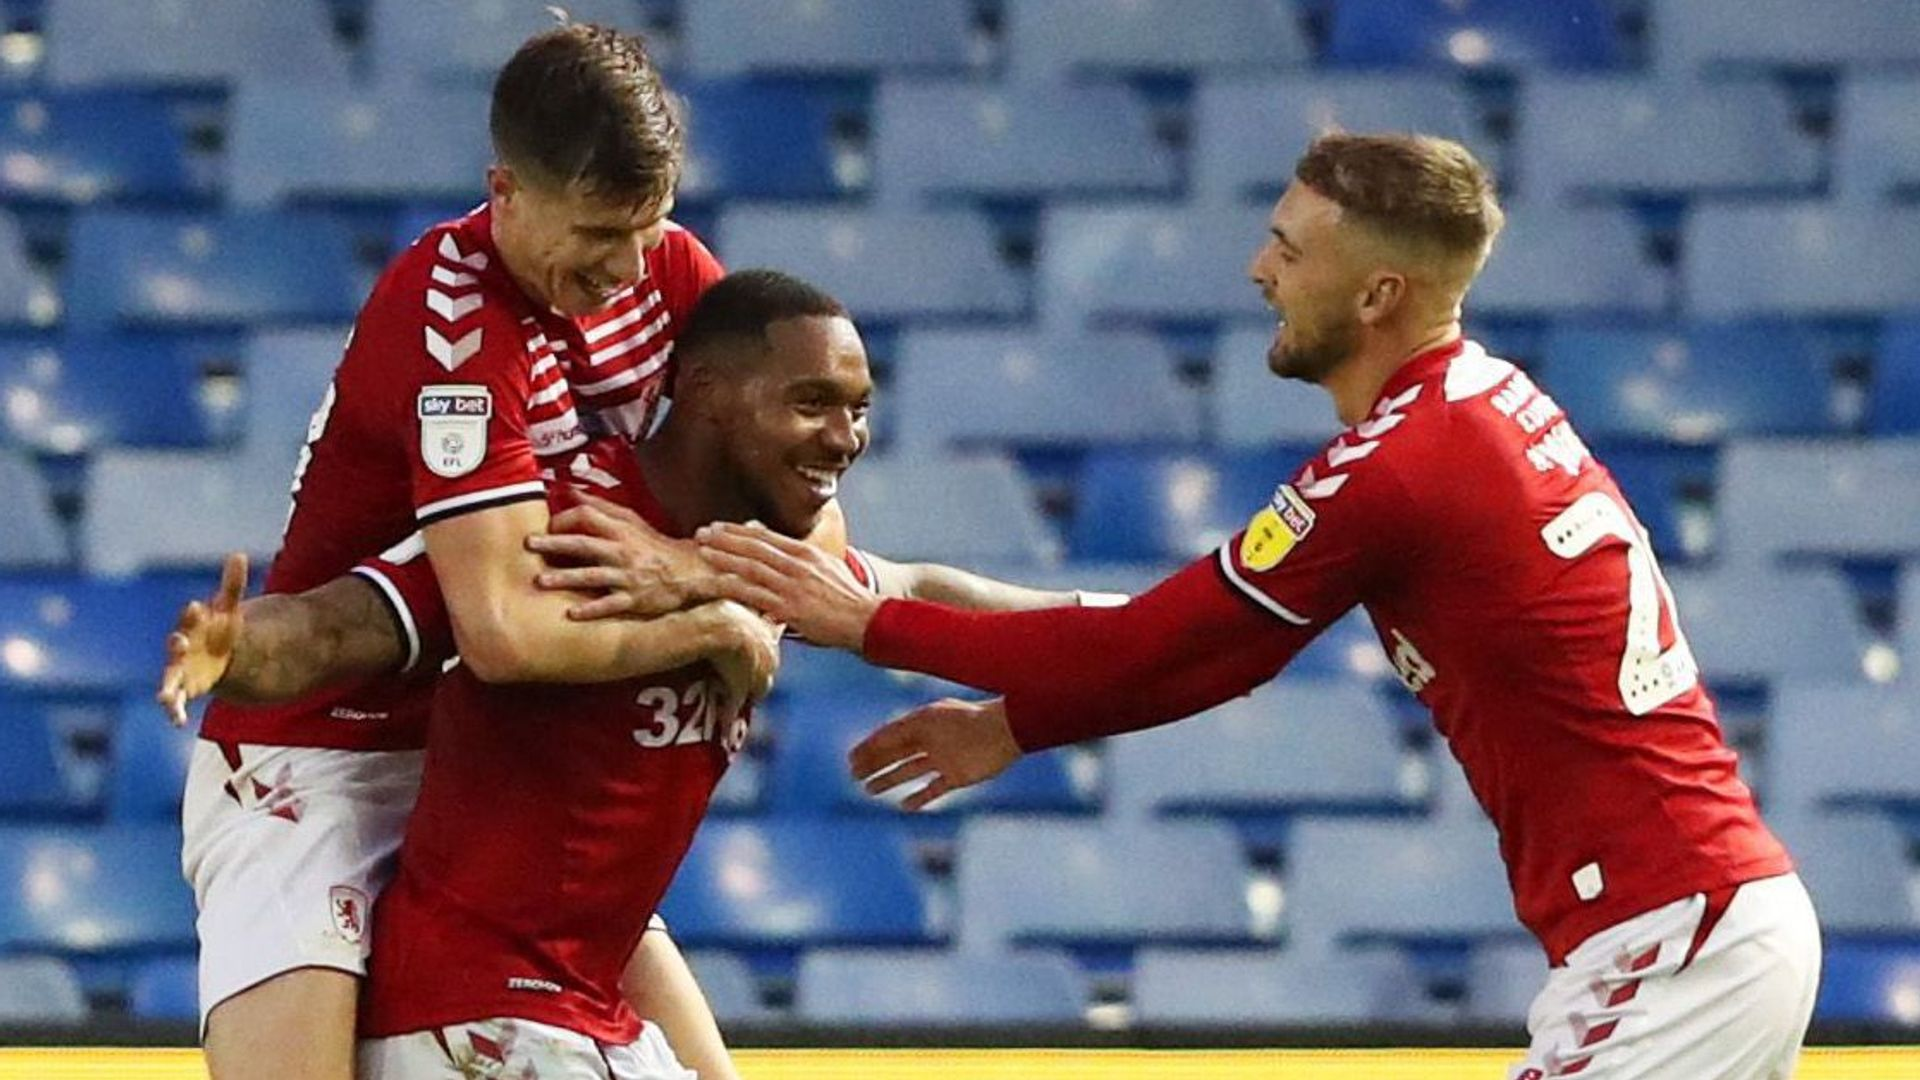 Boro beat Sheff Wed to secure Championship status